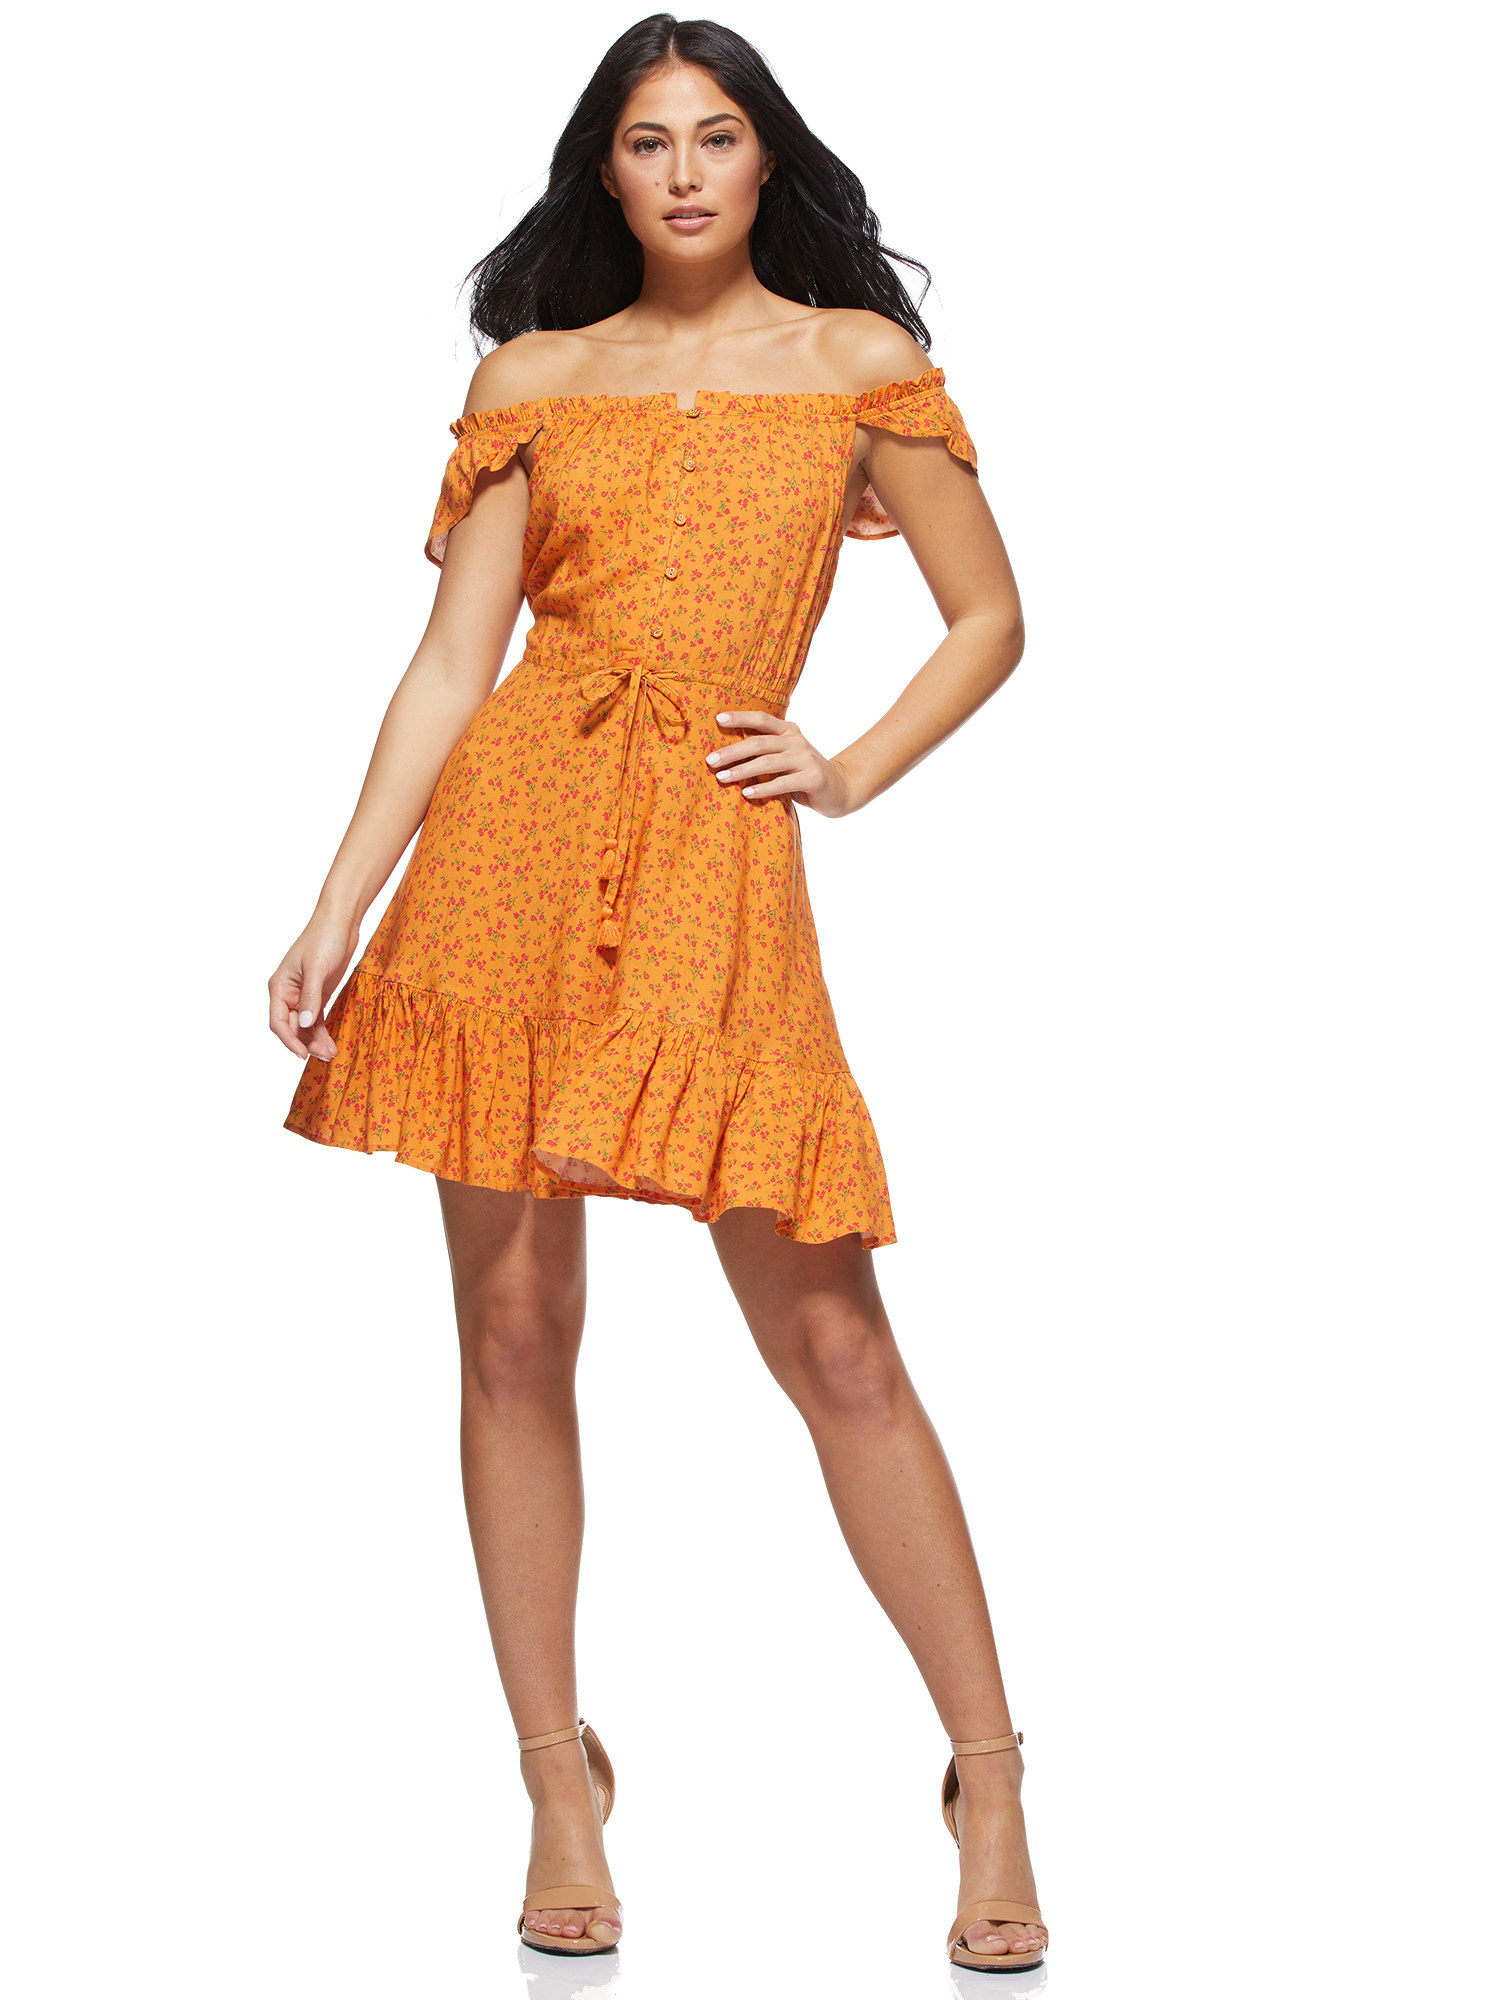 a model in the dress in yellow with tiny florals on it in orange